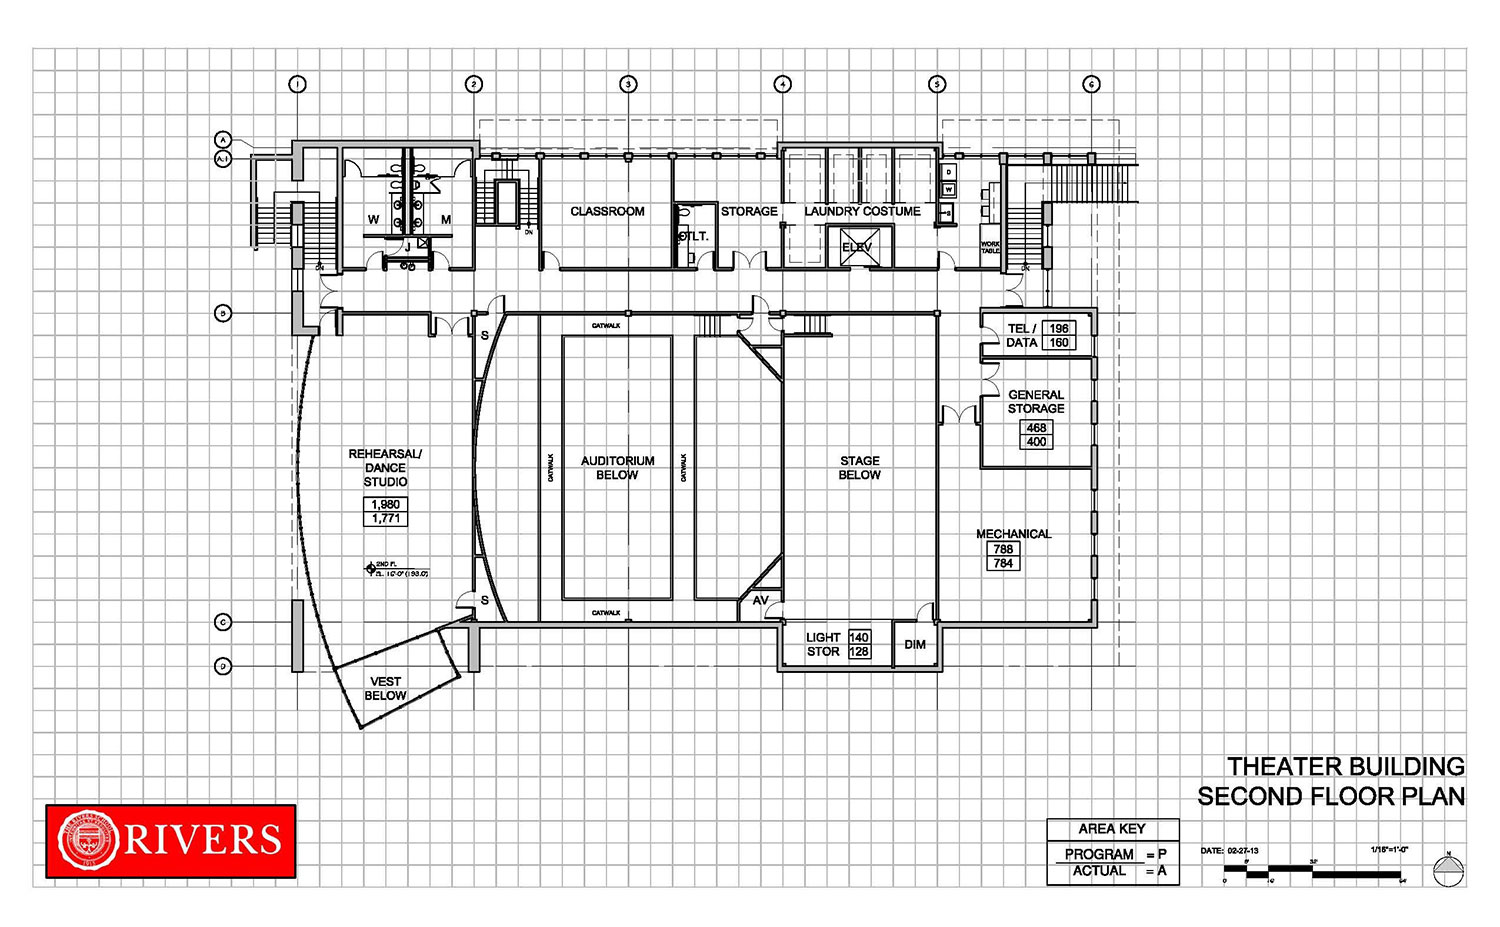 X-PLAN-2-Layout1-11X17.jpg